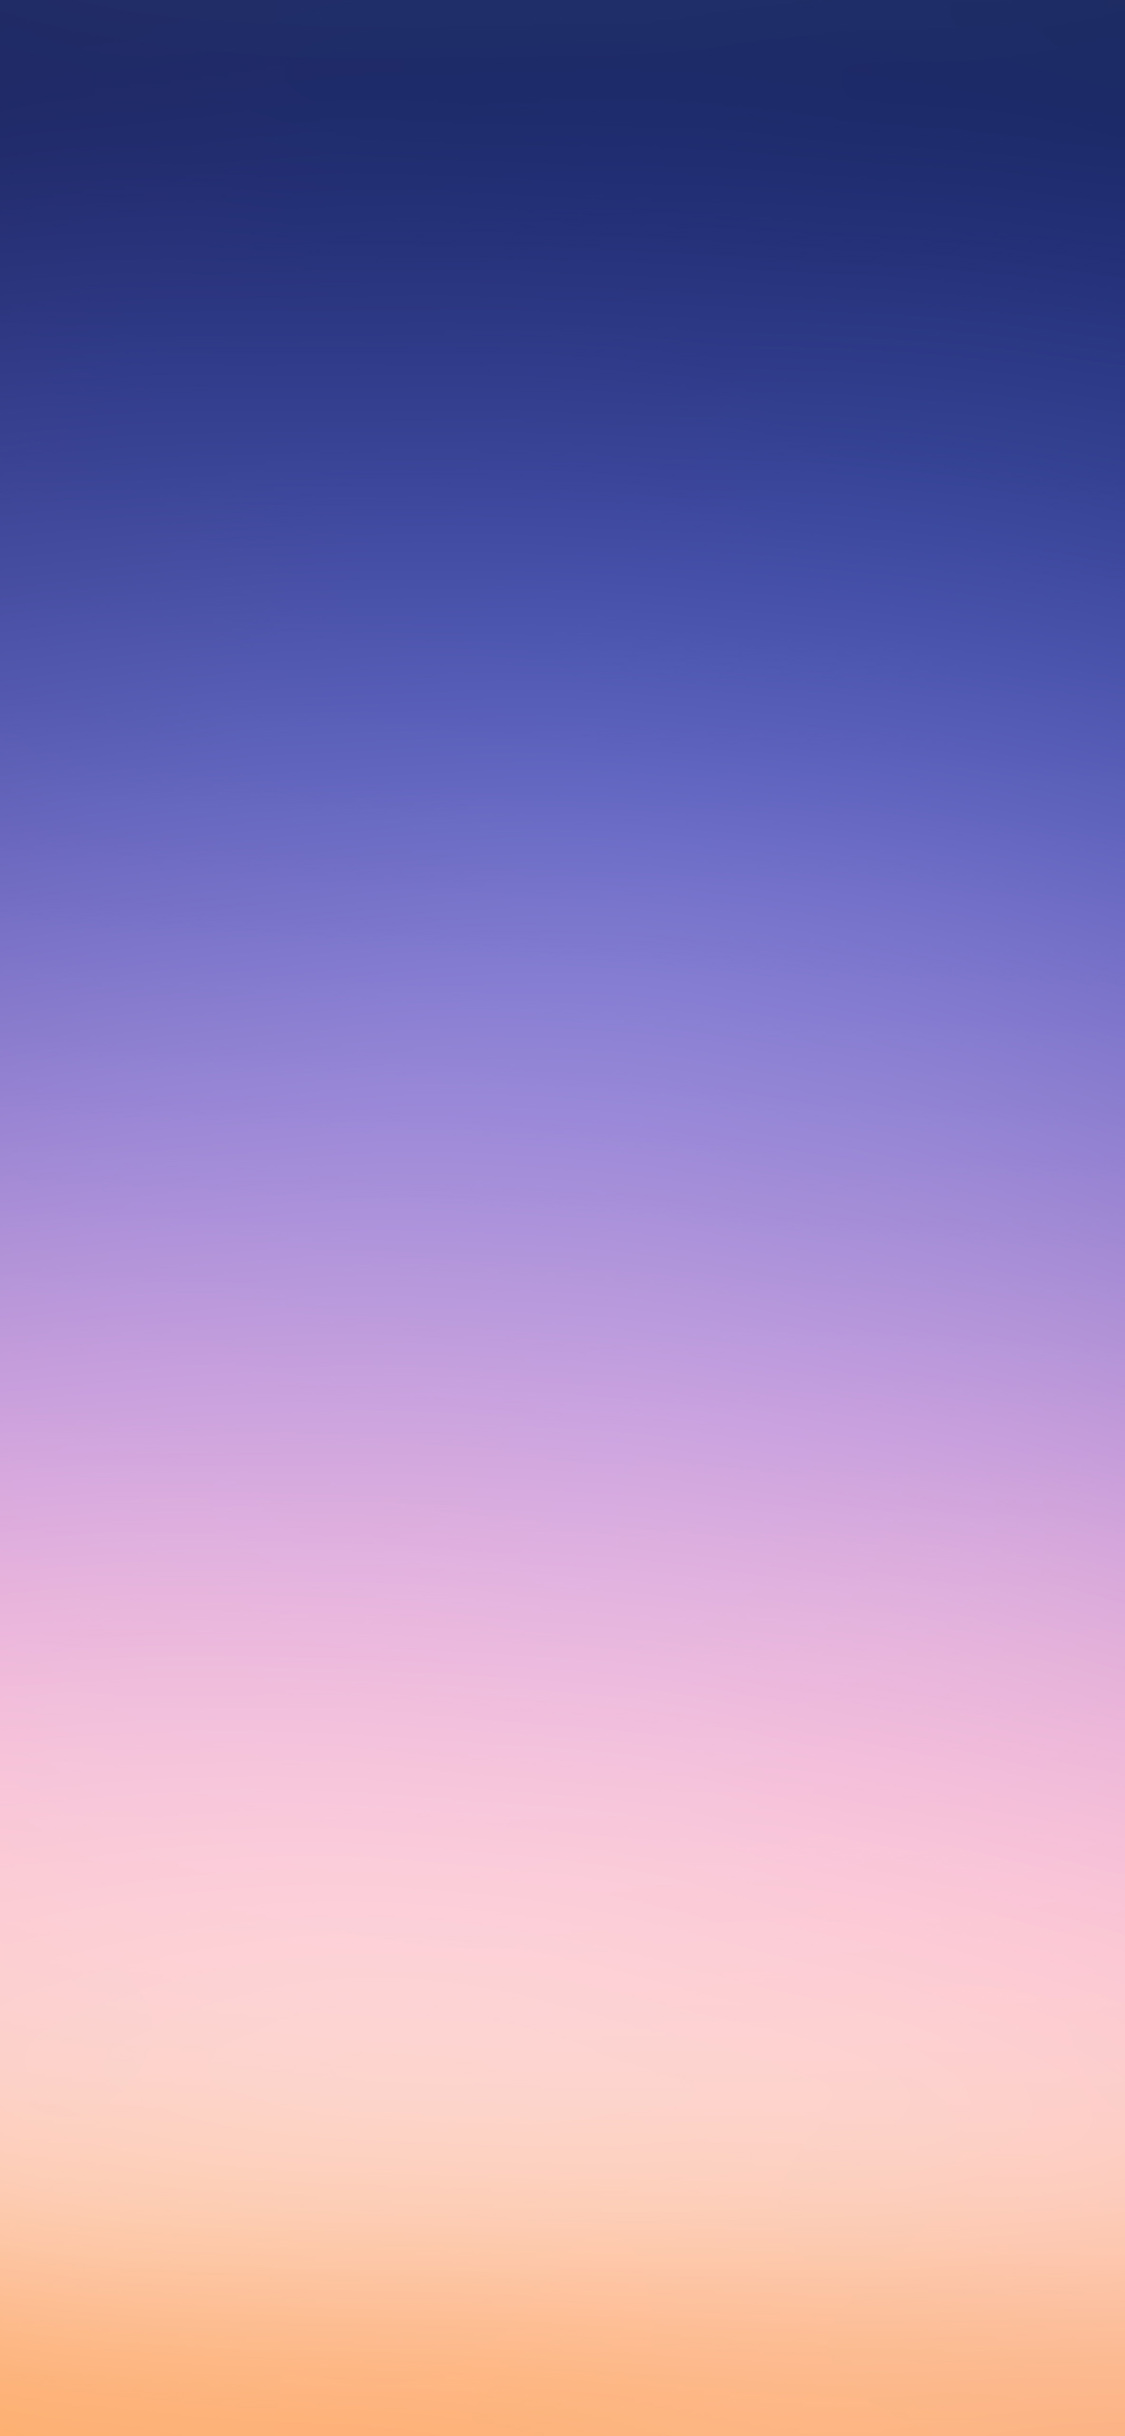 iPhoneXpapers.com-Apple-iPhone-wallpaper-sl33-sunrise-blue-orange-blur-gradation